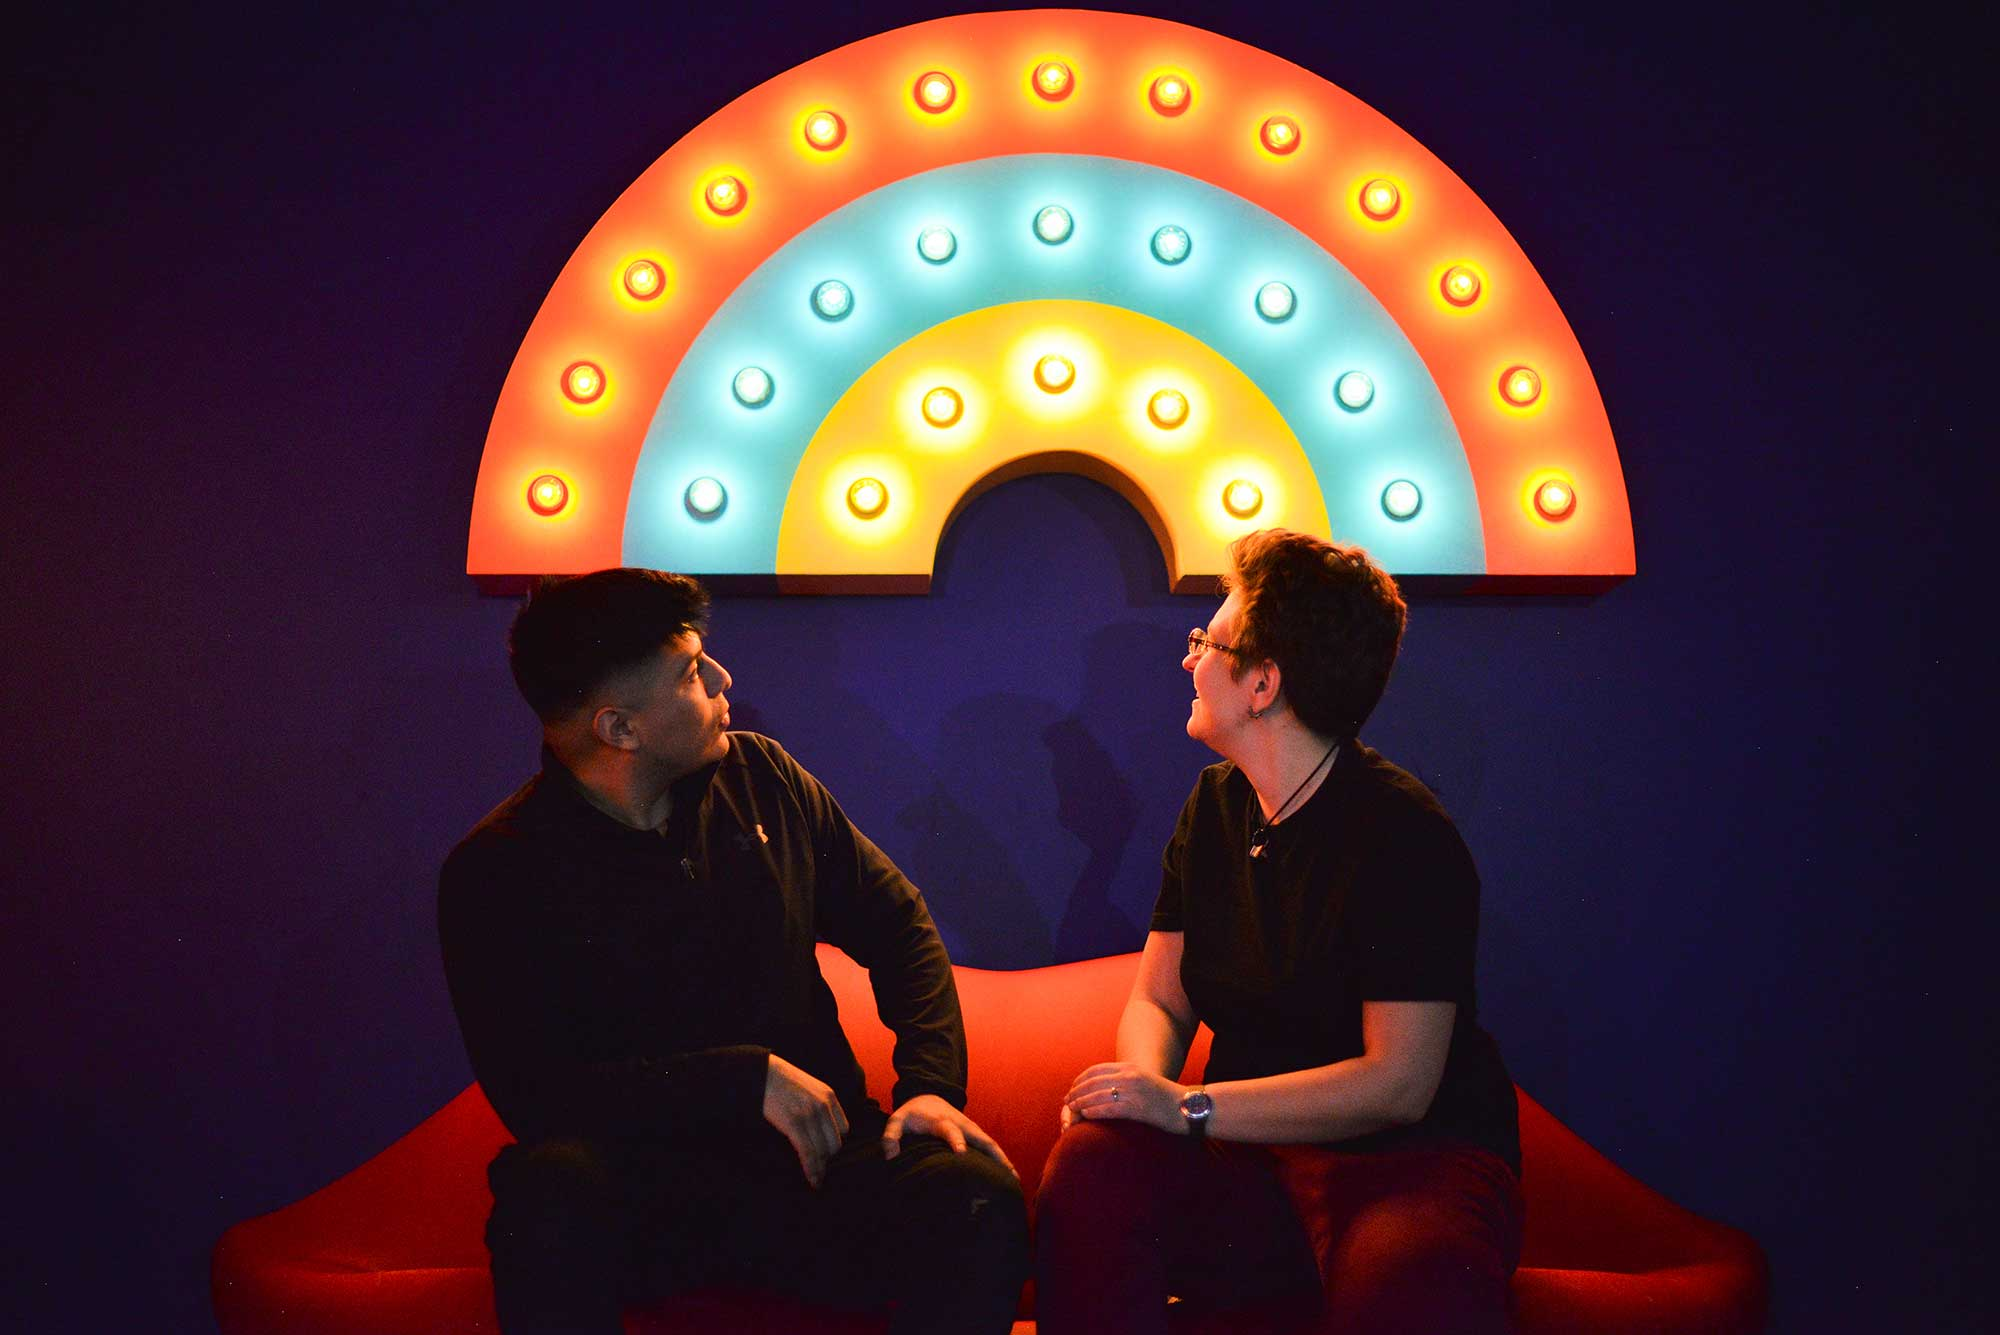 Two people seated in front of a rainbow made of lightbulbs.